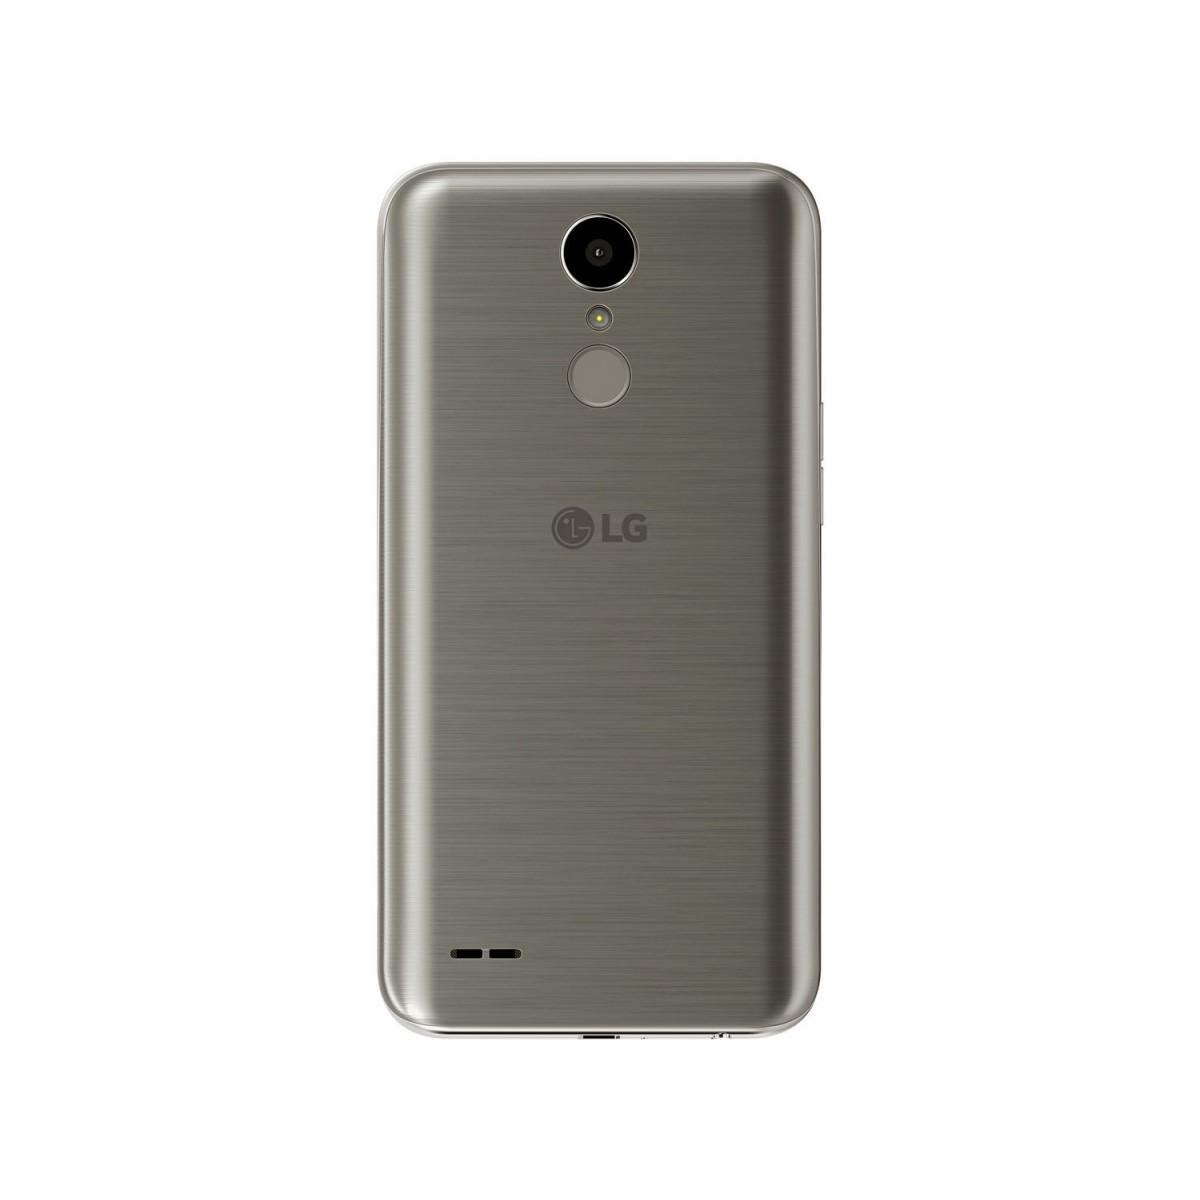 "Smartphone LG K10 Novo 32GB Titânio Dual Chip 4G - Câm. 13MP + Selfie 5MP Tela 5.3"" Proc. Octa Core"